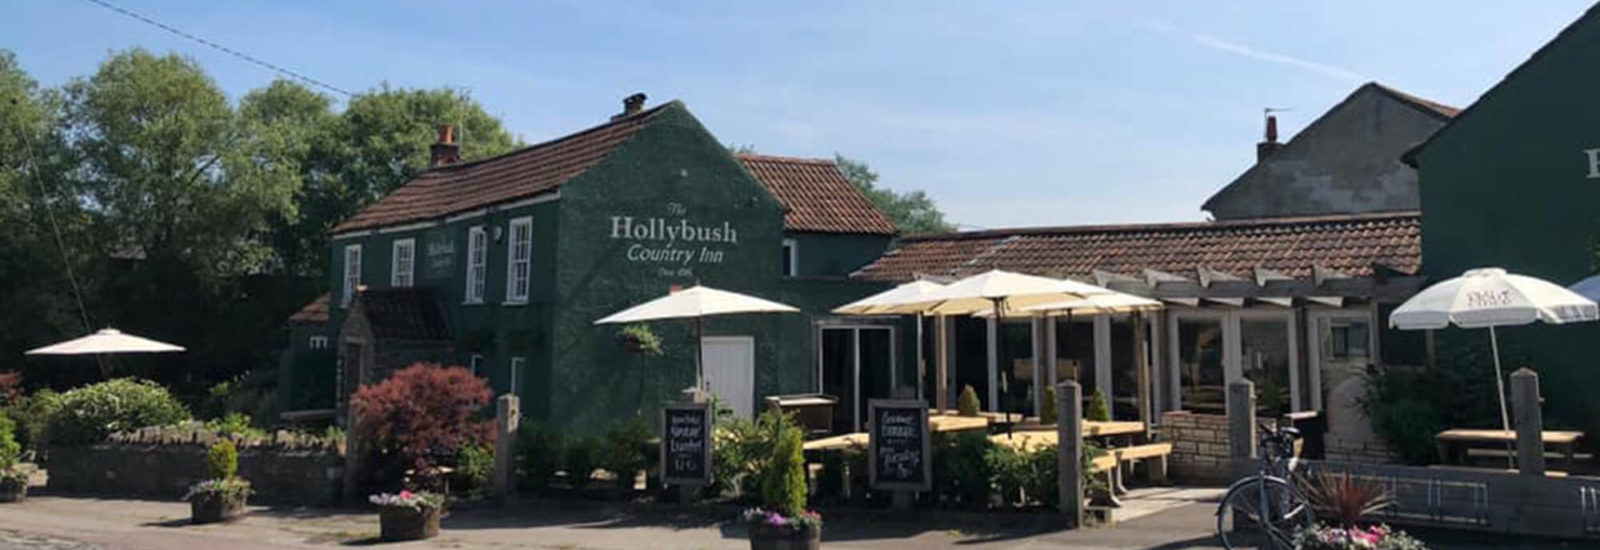 Image of The Hollybush